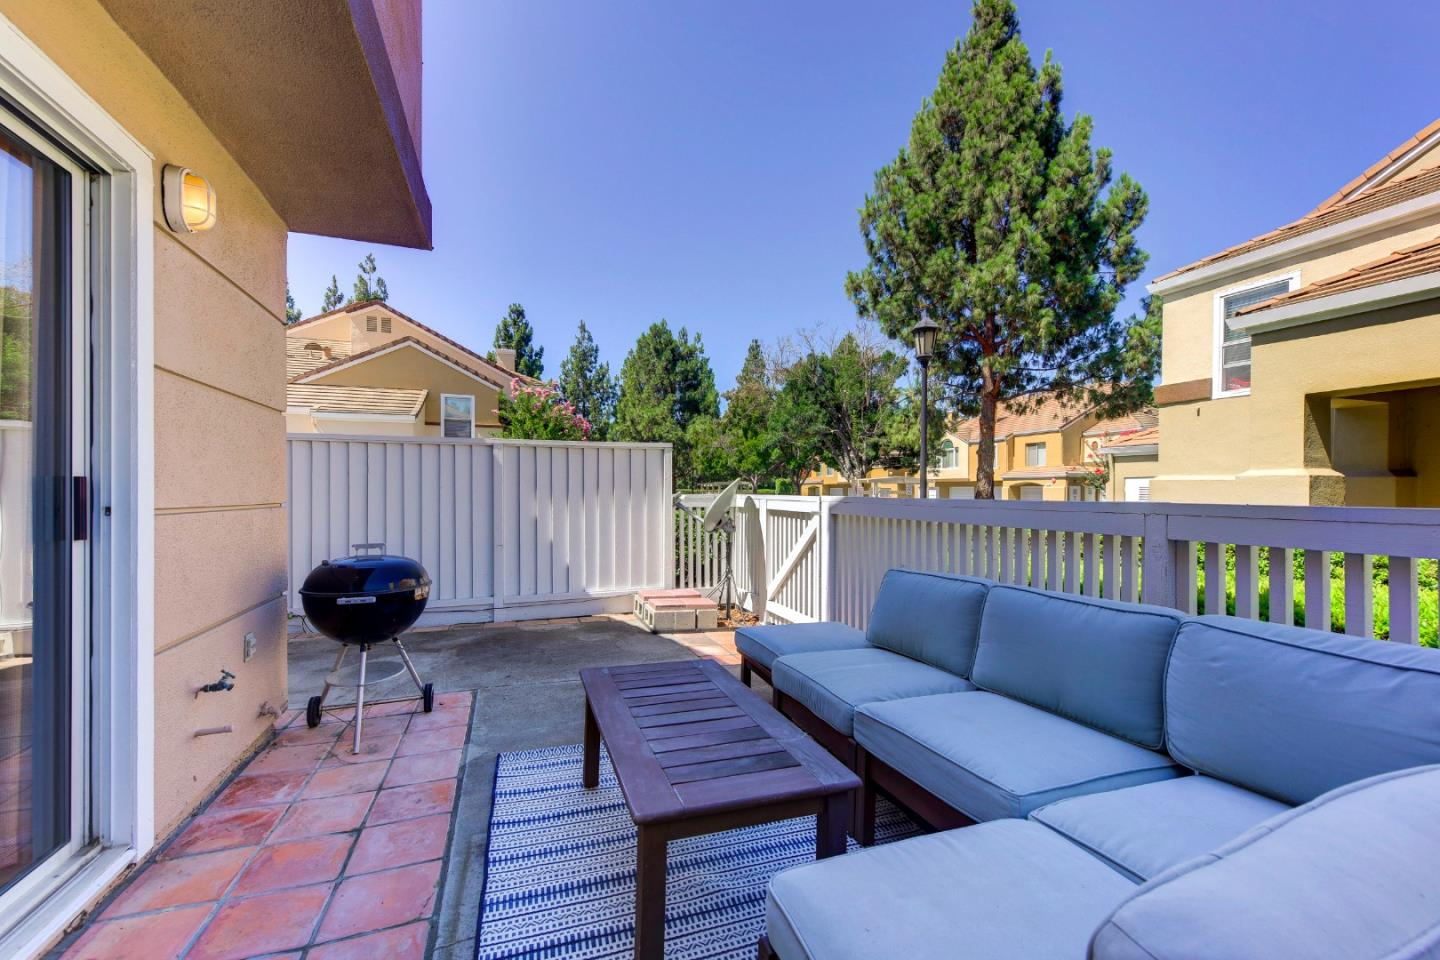 Additional photo for property listing at 6999 Rodling Drive  San Jose, Калифорния 95138 Соединенные Штаты